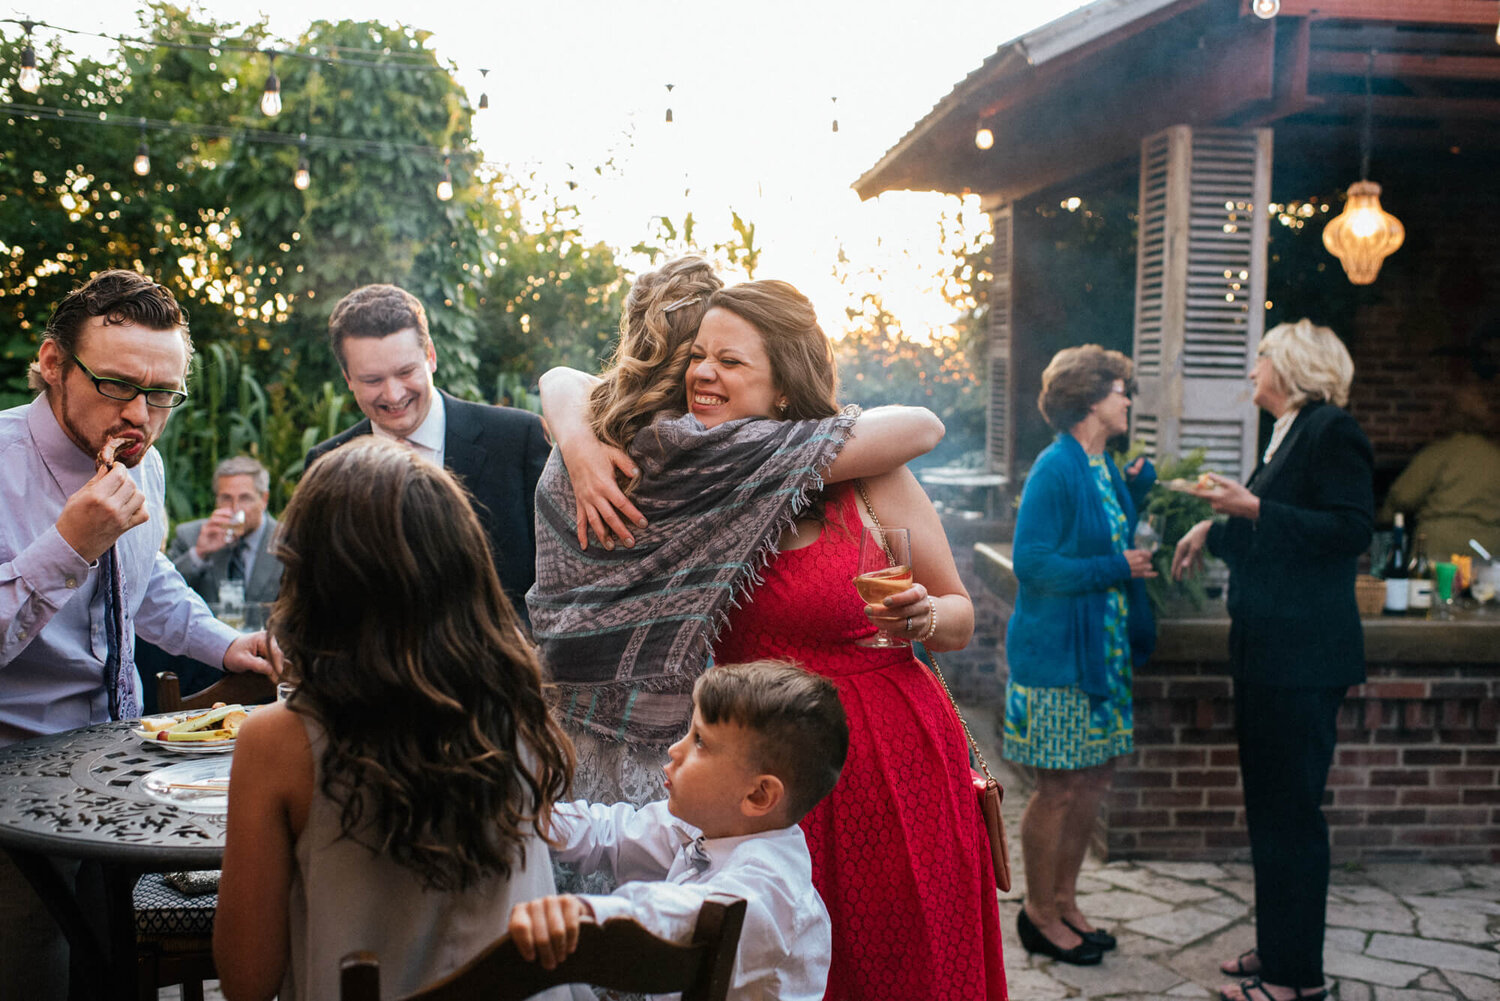 13-city-cottage-st-louis-wedding-guests-hugging.jpg